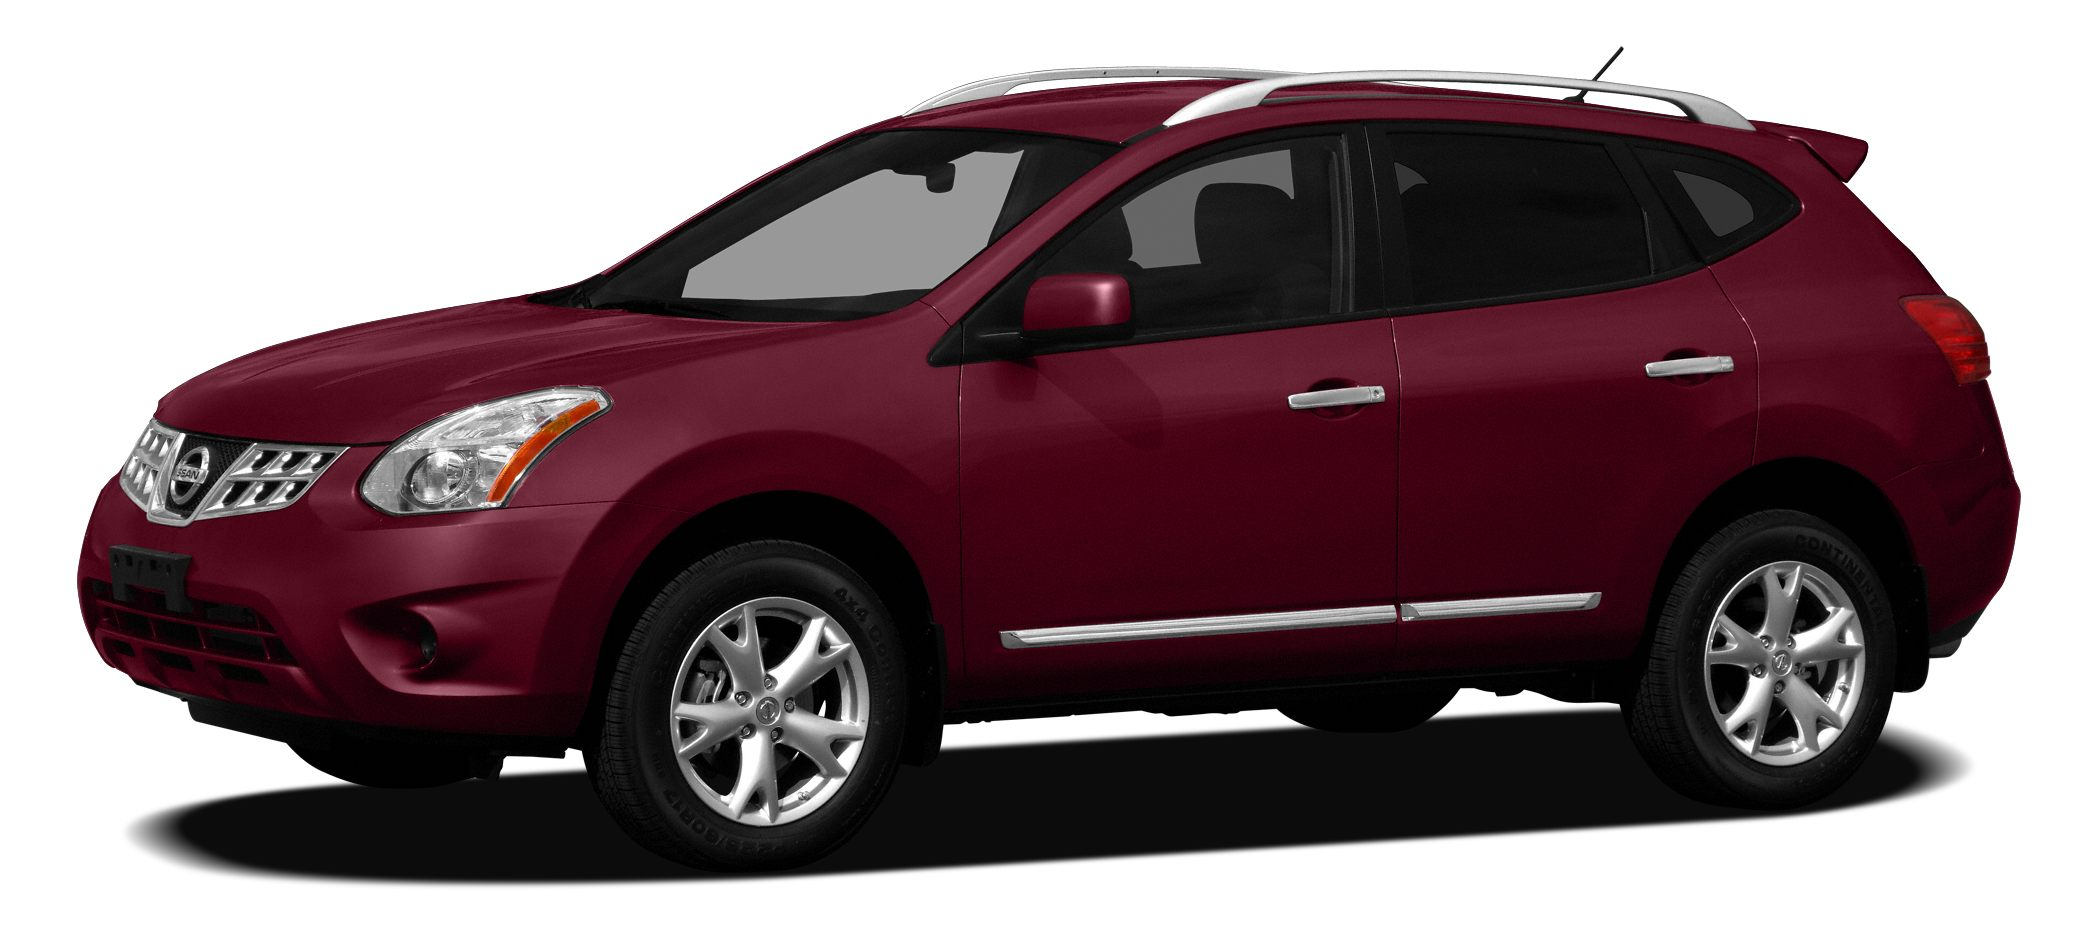 2011 Nissan Rogue S WE SELL OUR VEHICLES AT WHOLESALE PRICES AND STAND BEHIND OUR CARS  COME